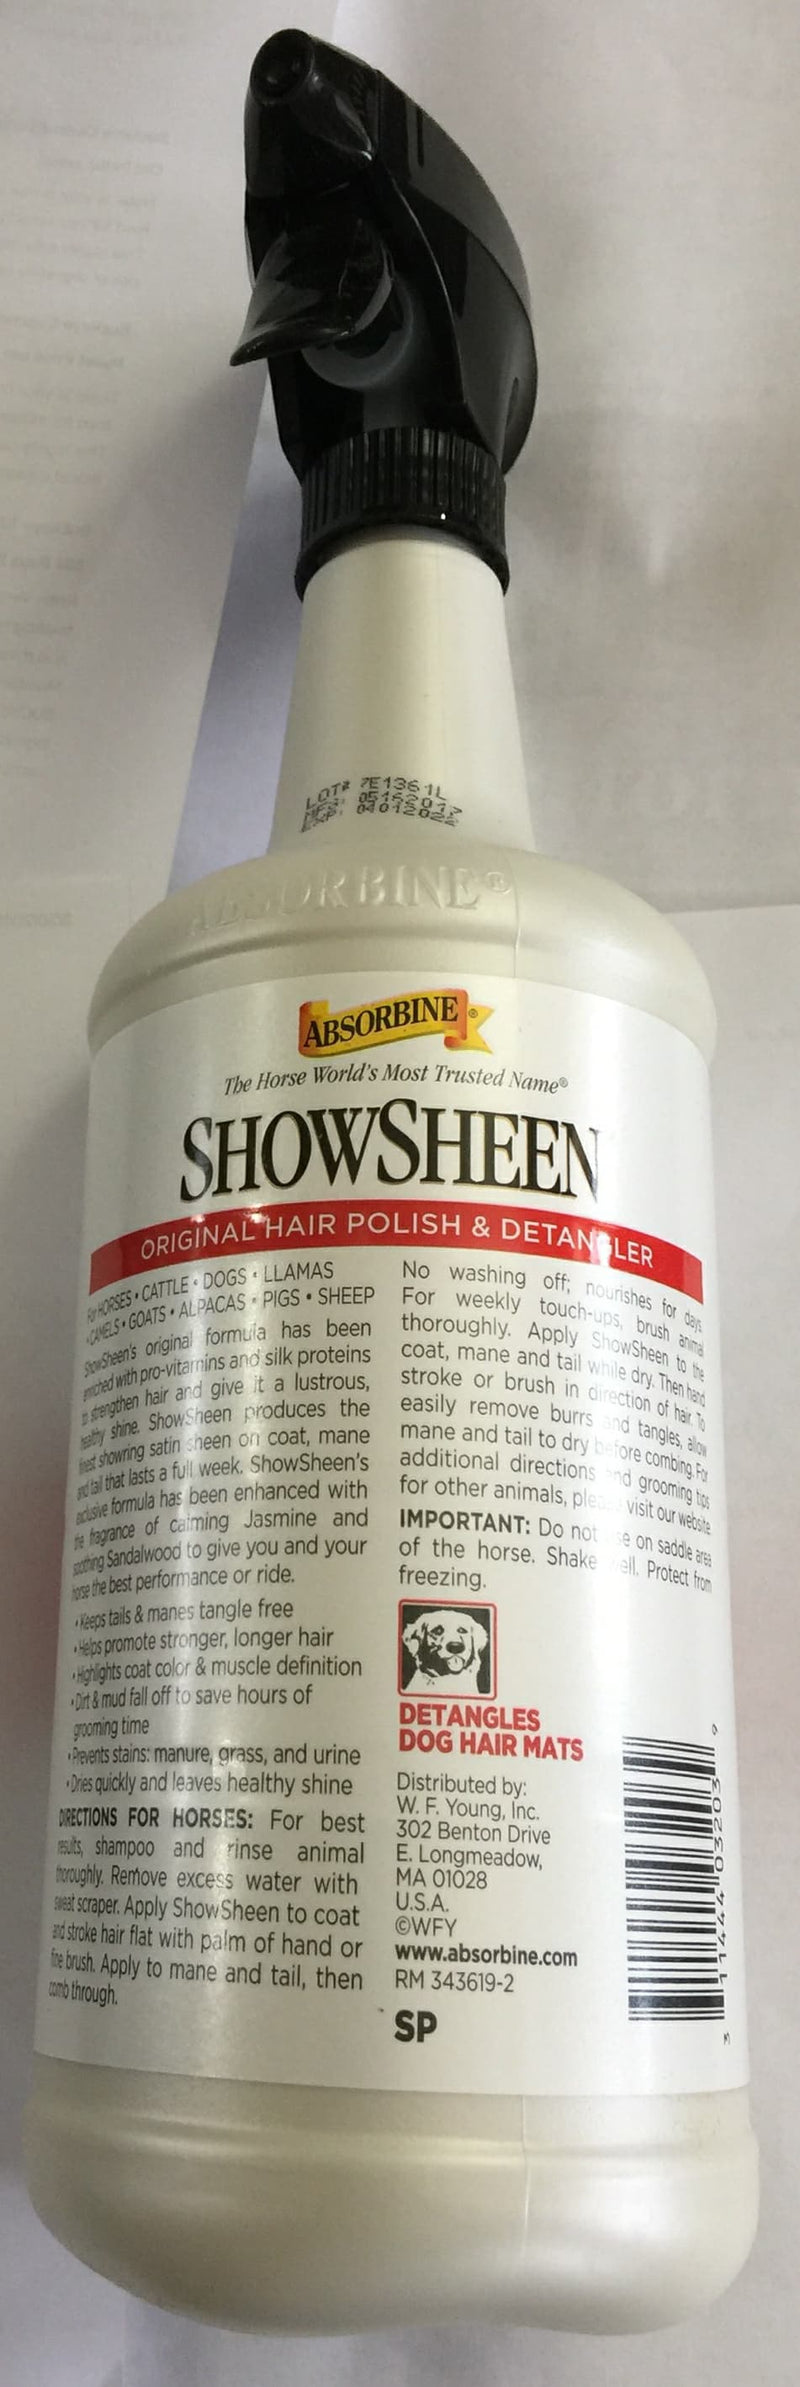 Showsheen Hair Polish & Detangler 32oz Bottle